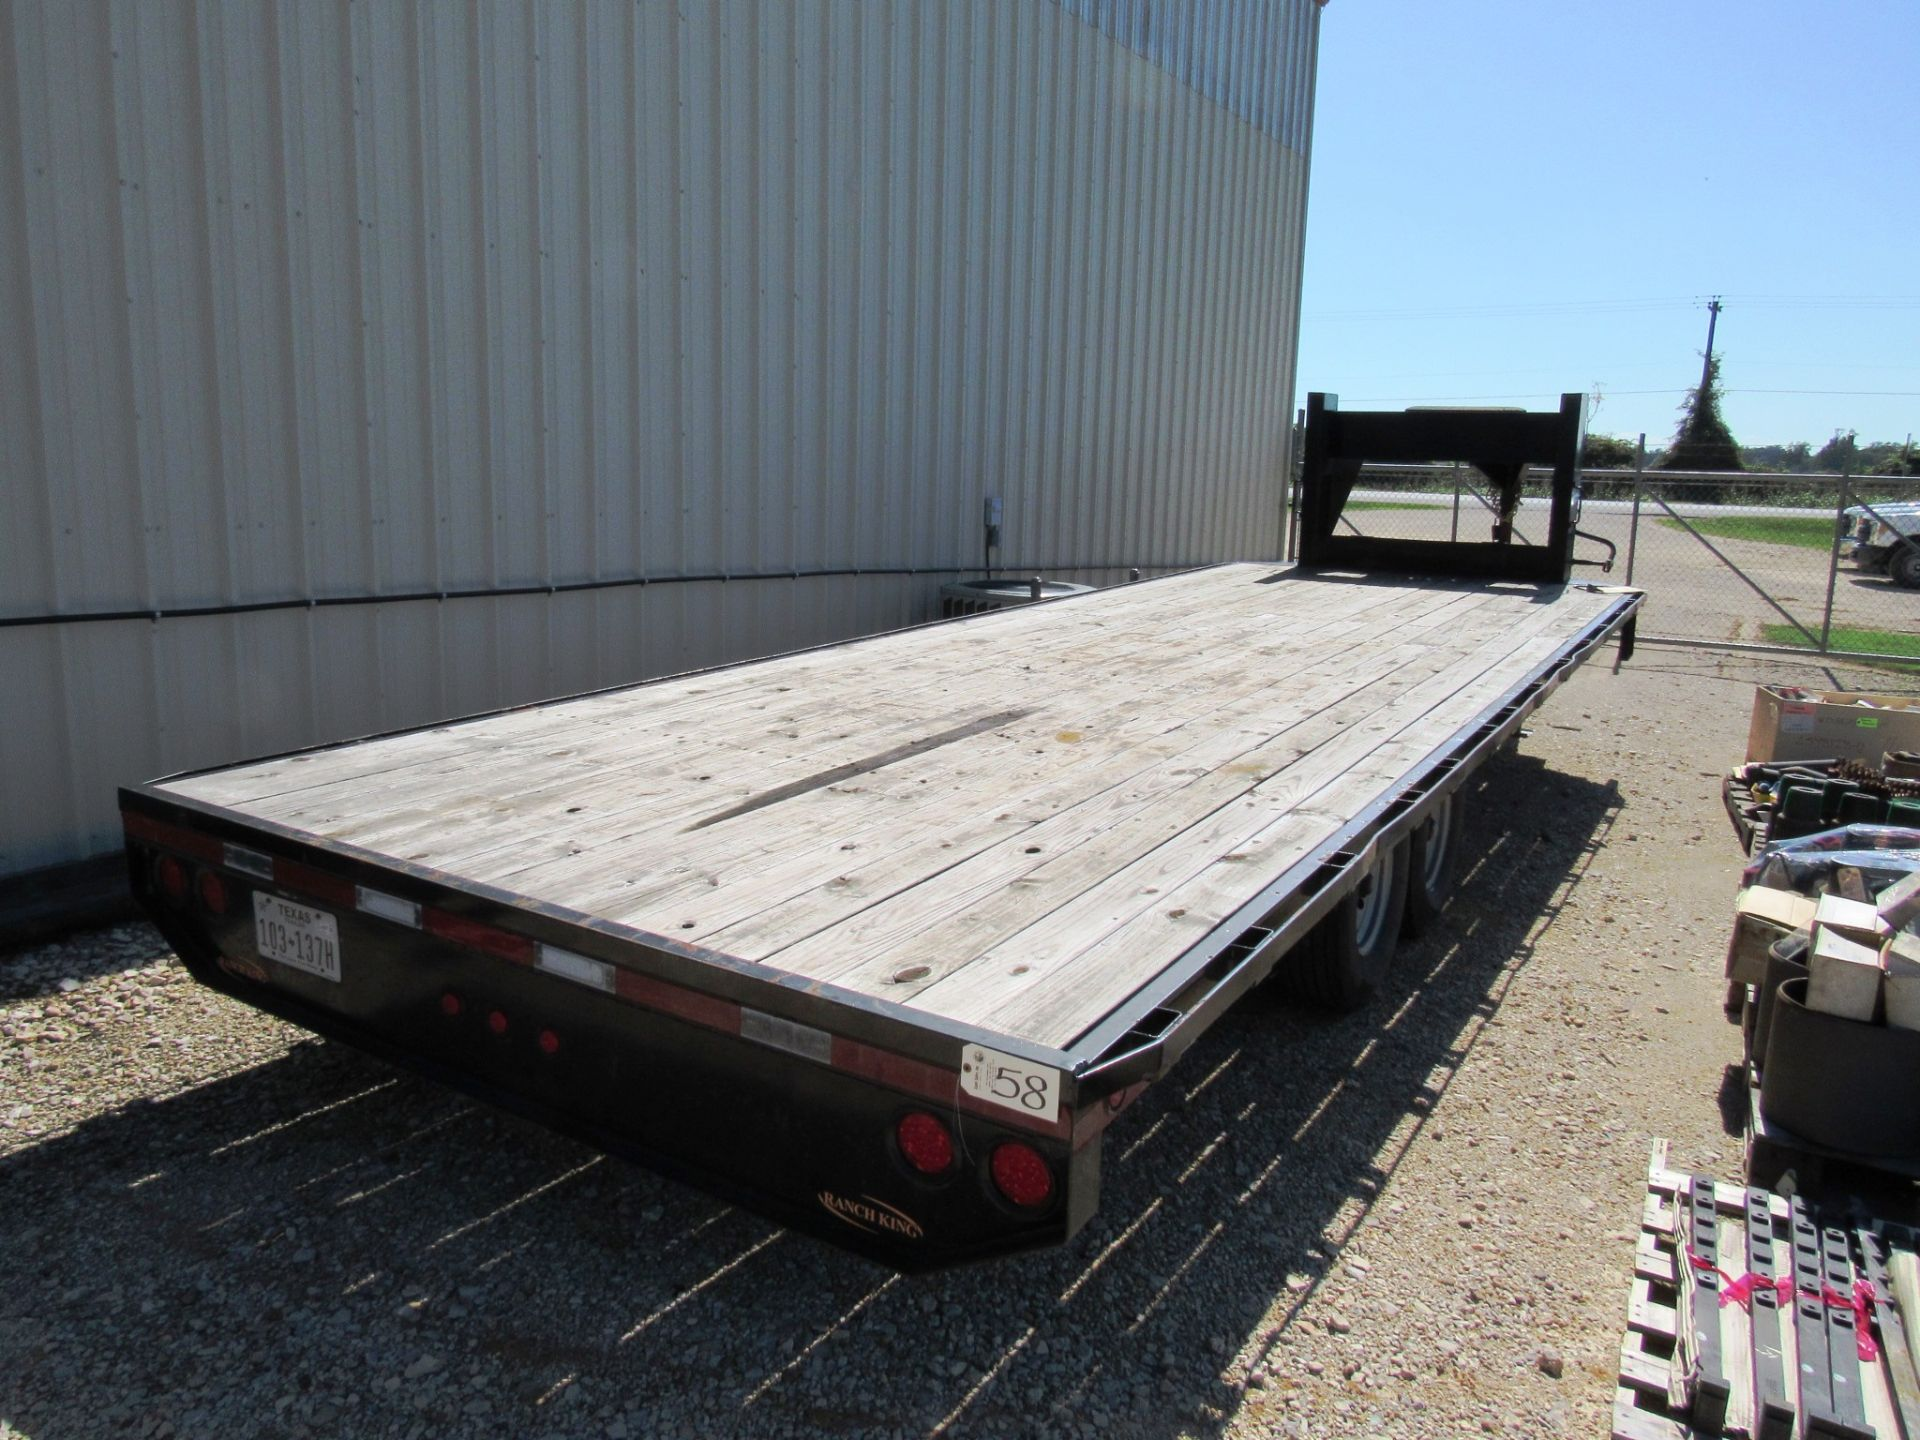 Lot 58 - Ranch King 8' x 20' Gooseneck Trailer